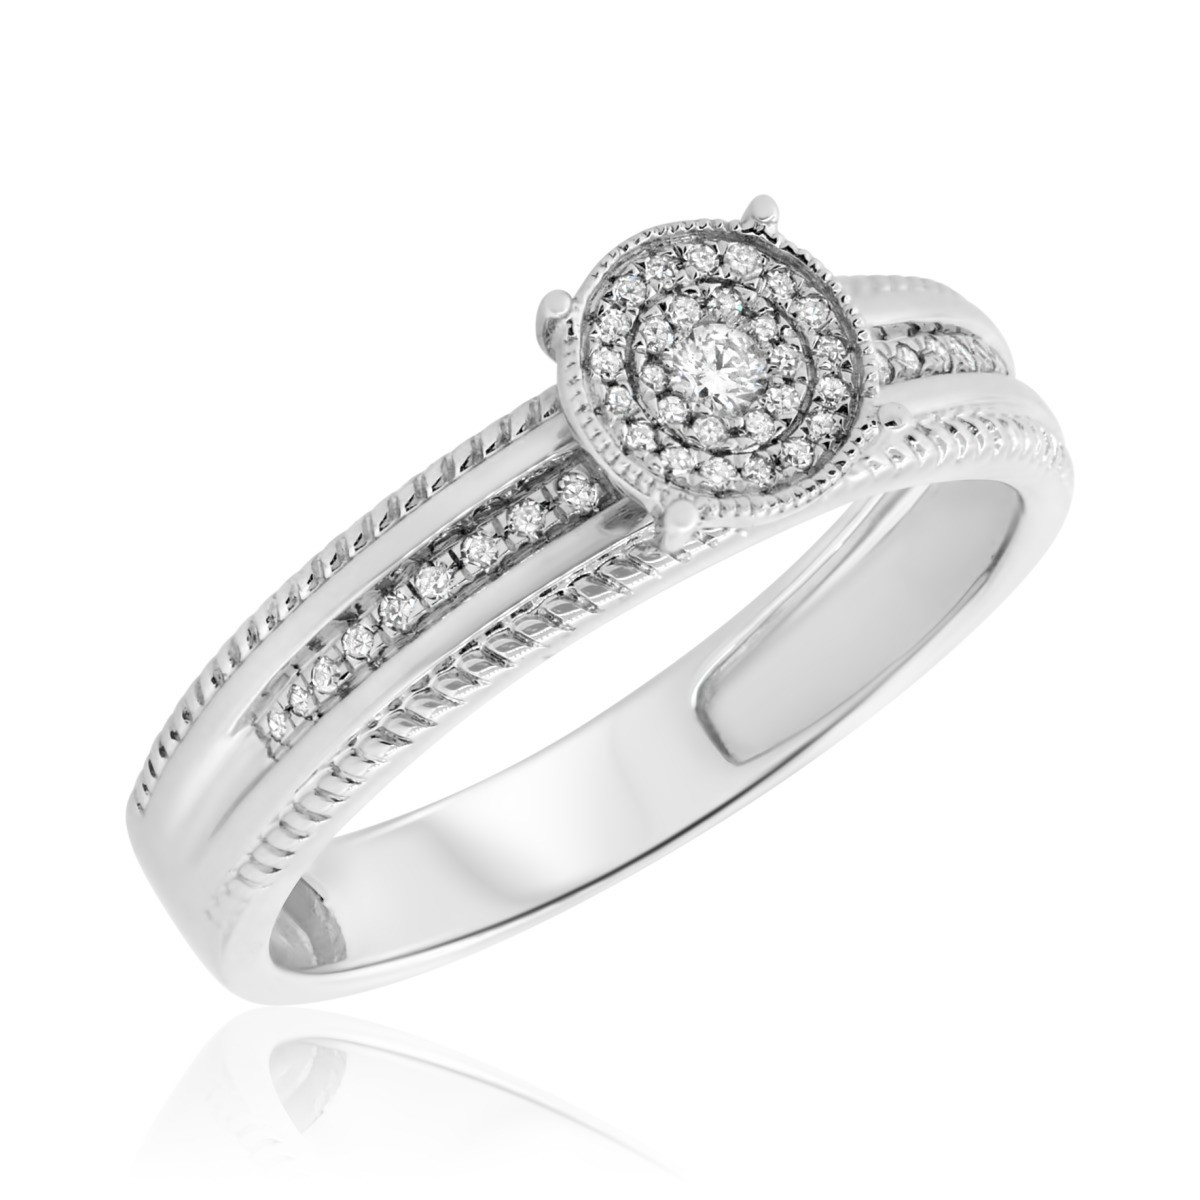 1/7 CT. T.W. Diamond Engagement Ring 10K White Gold